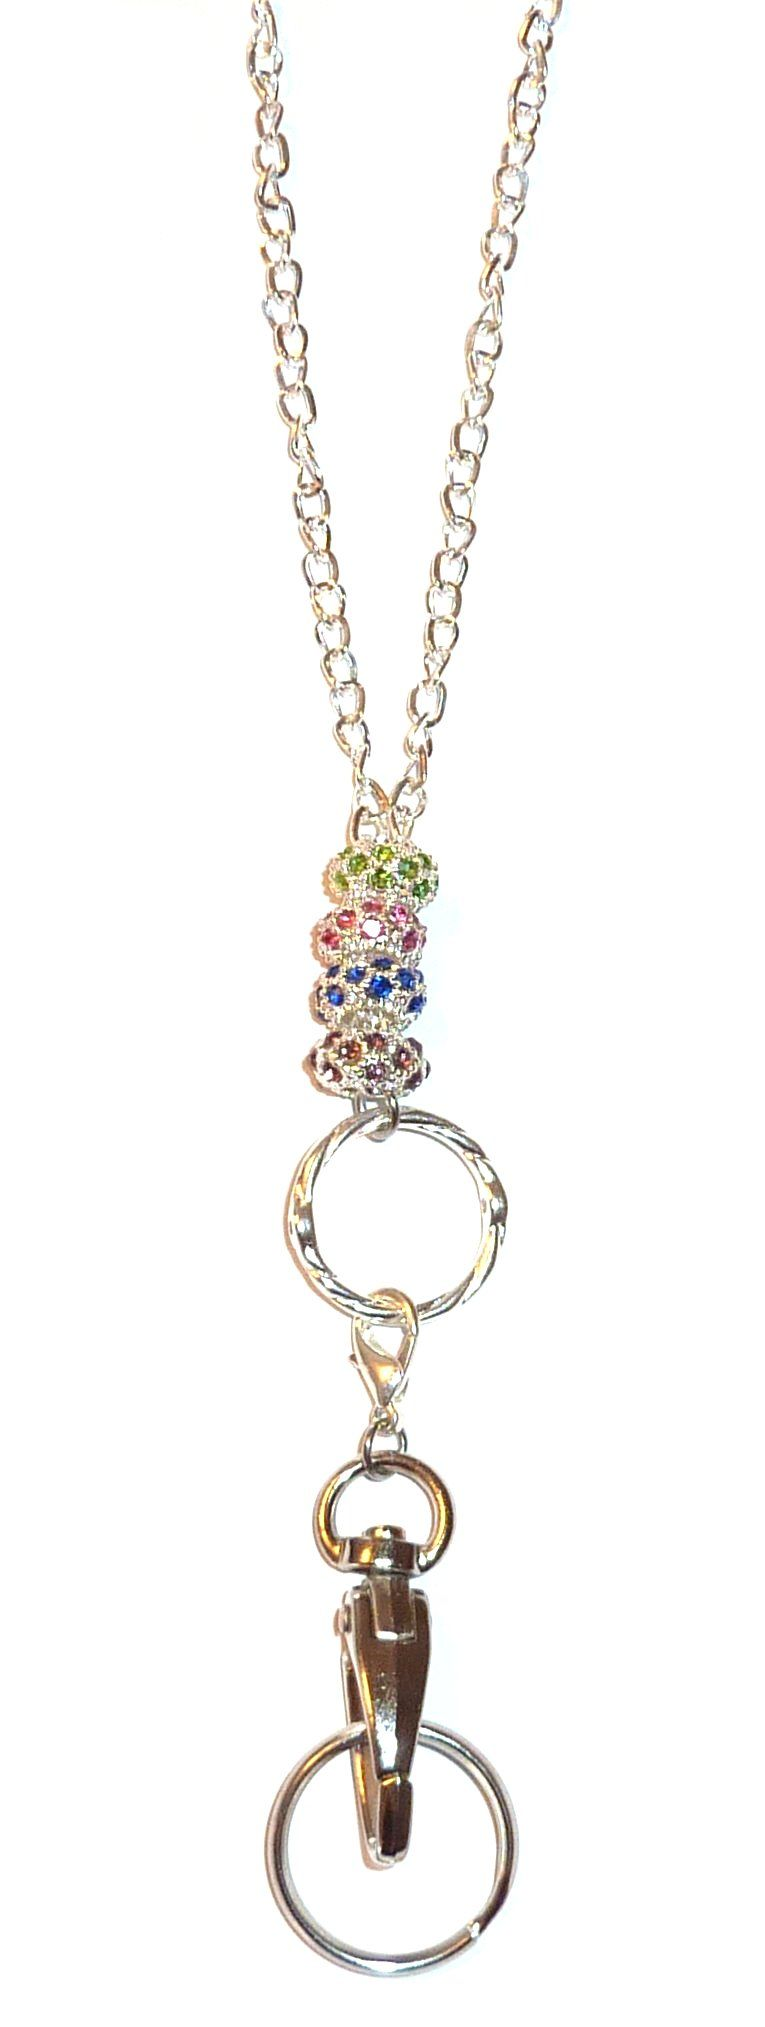 spring gift ideas - bling chain lanyard